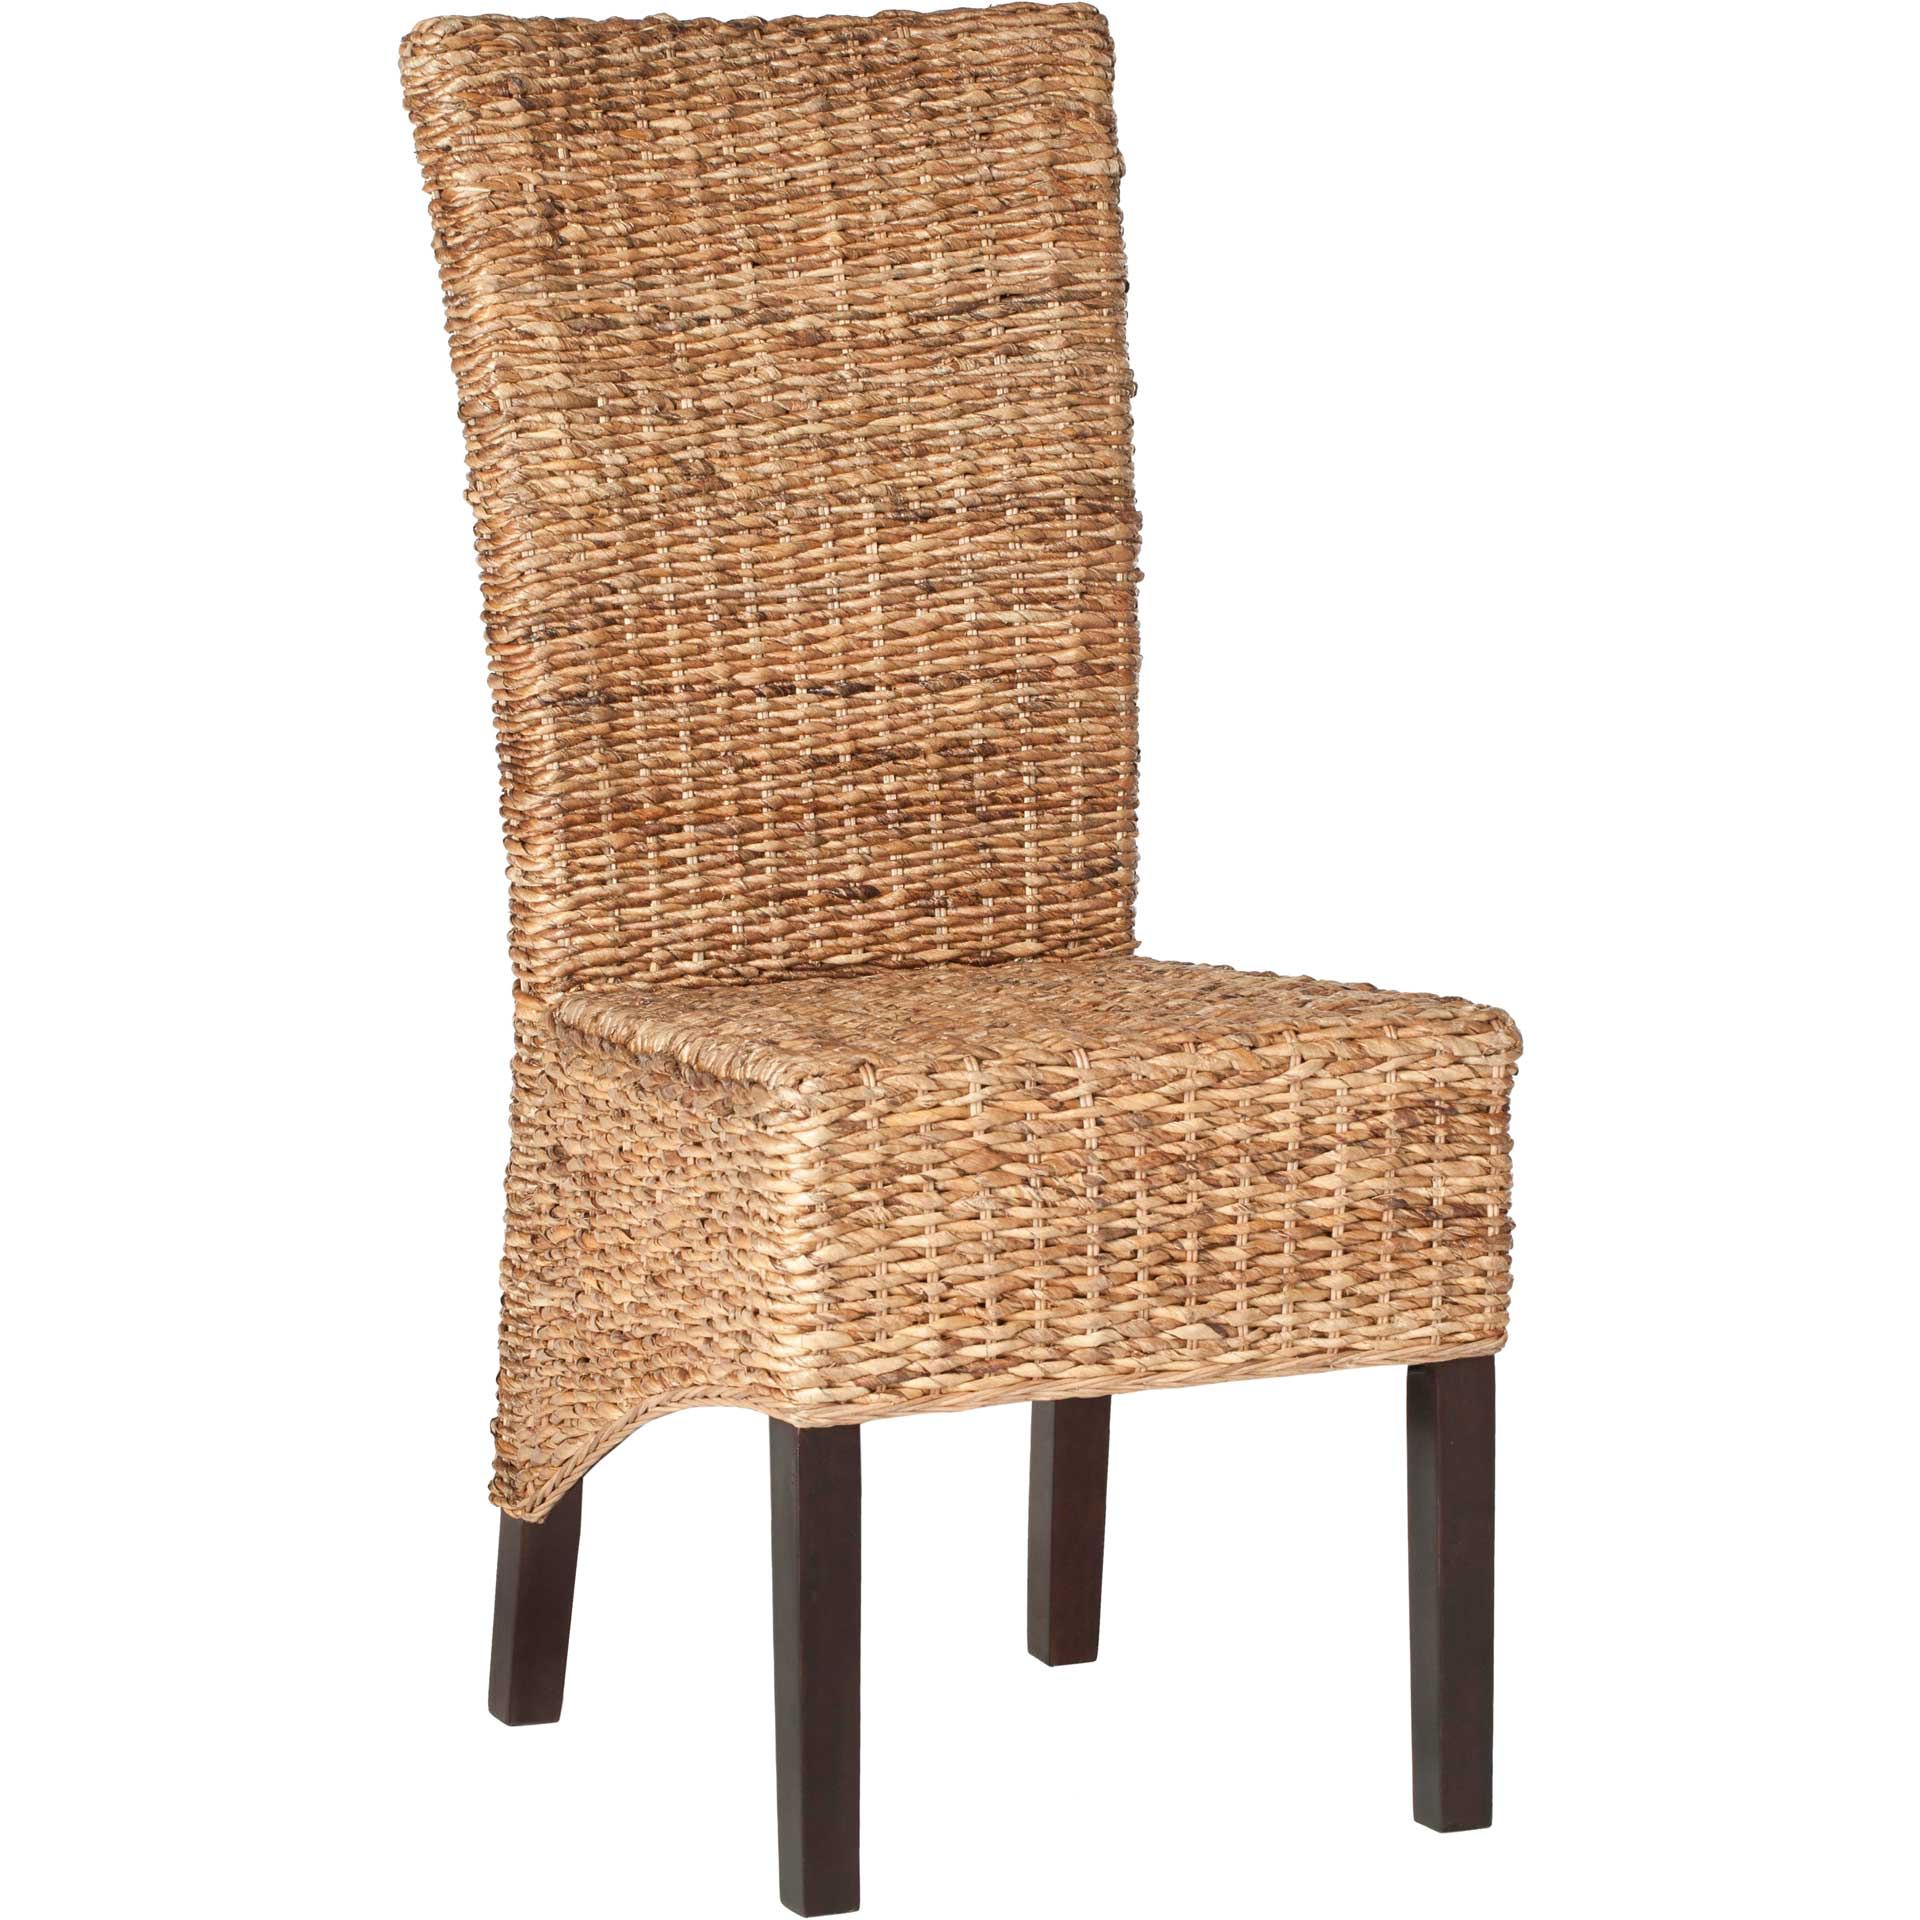 Kisii Rattan Side Chair Natural/Dark Brown (Set of 2)